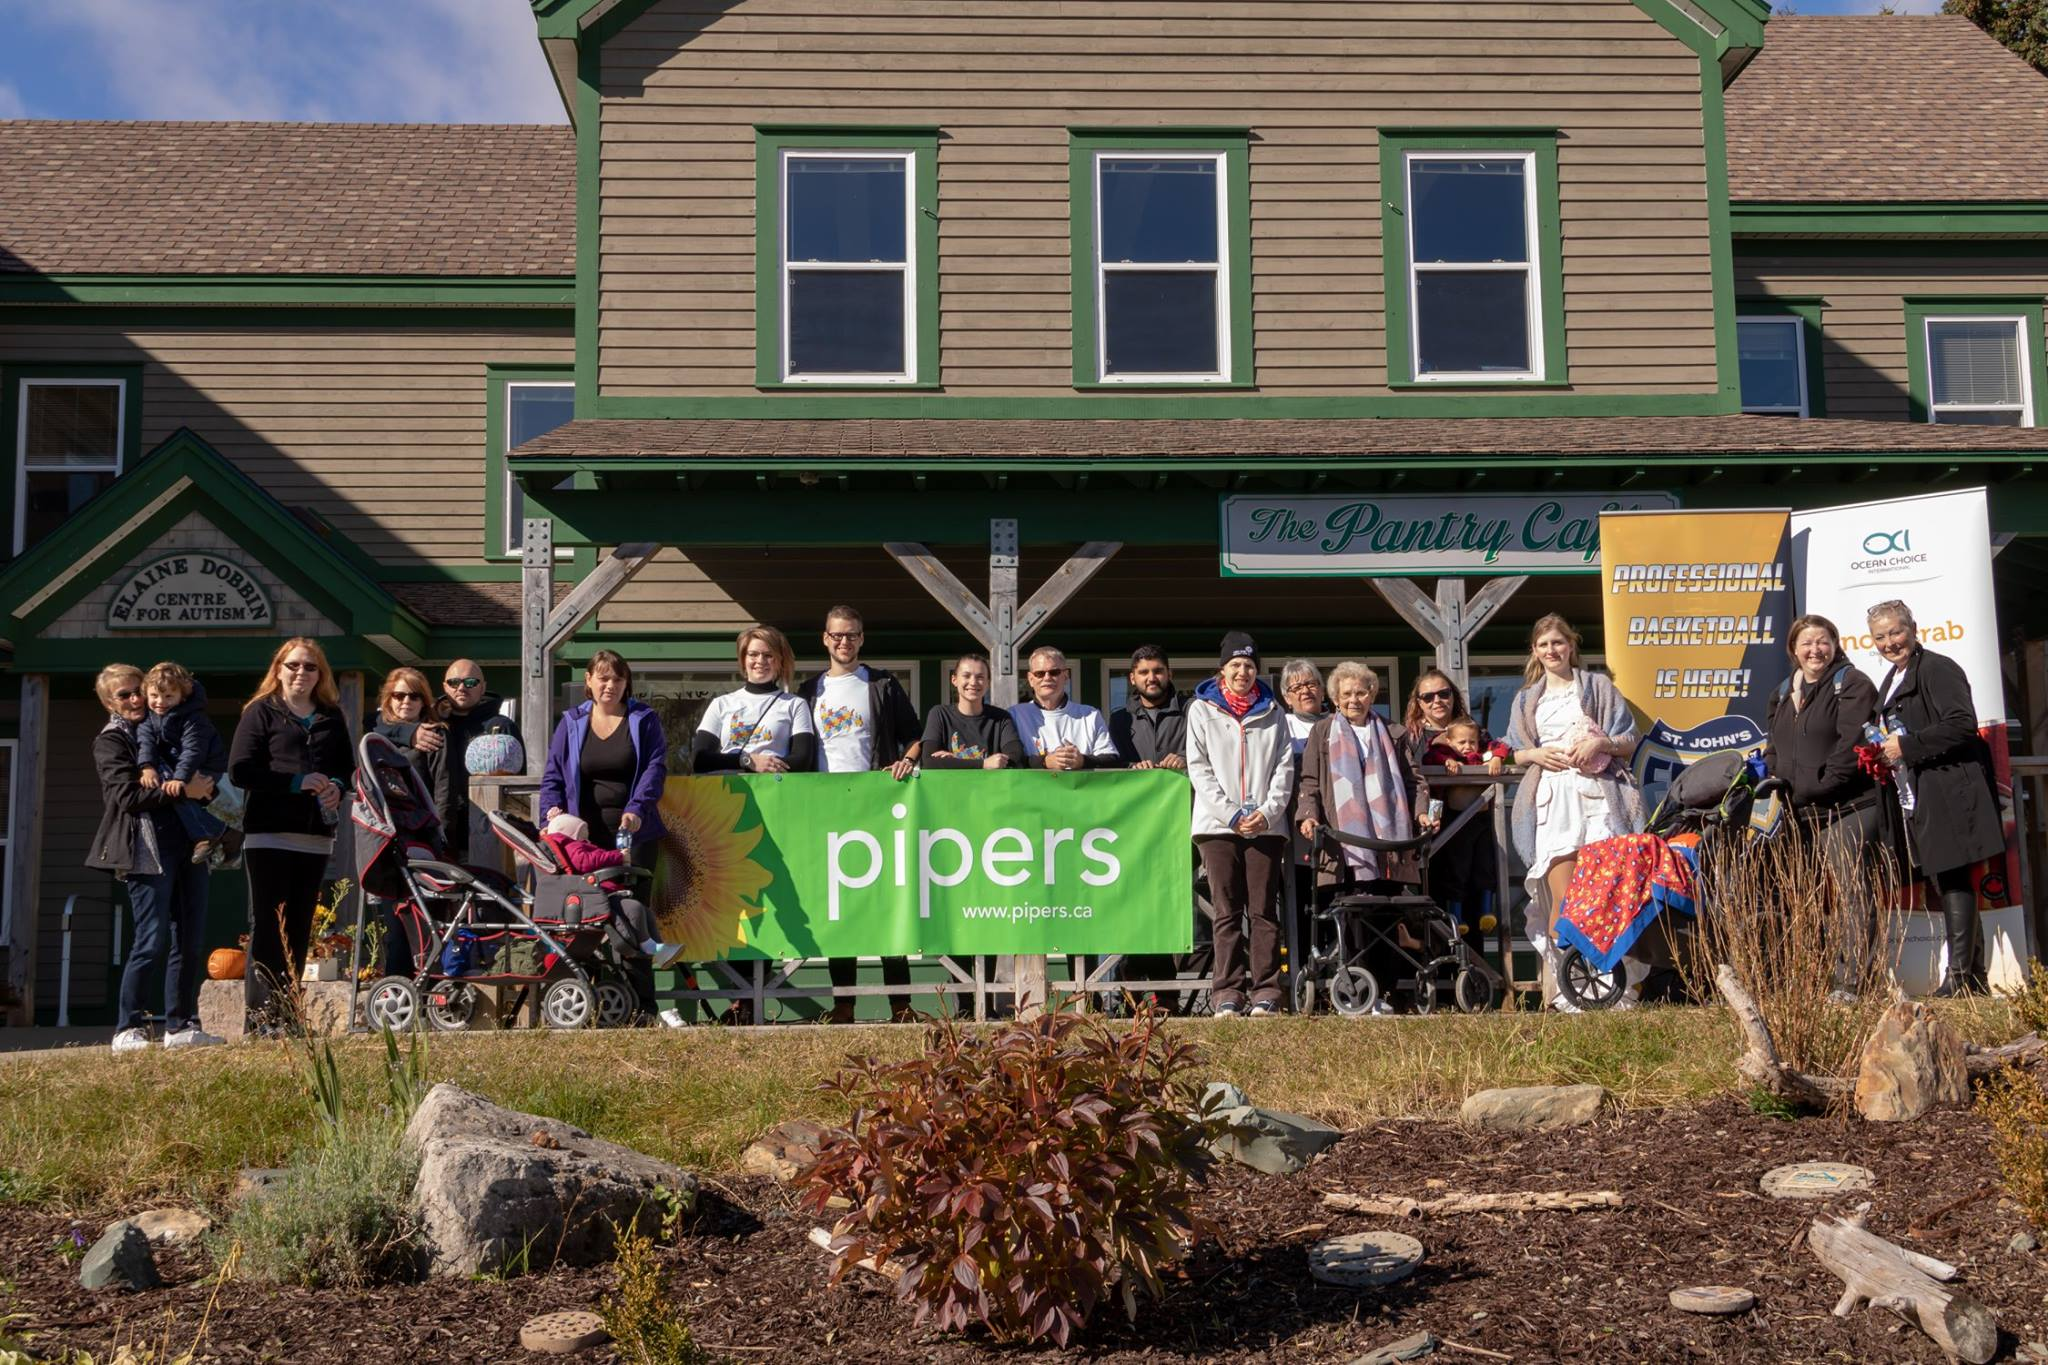 Pipers Active for Autism 2018